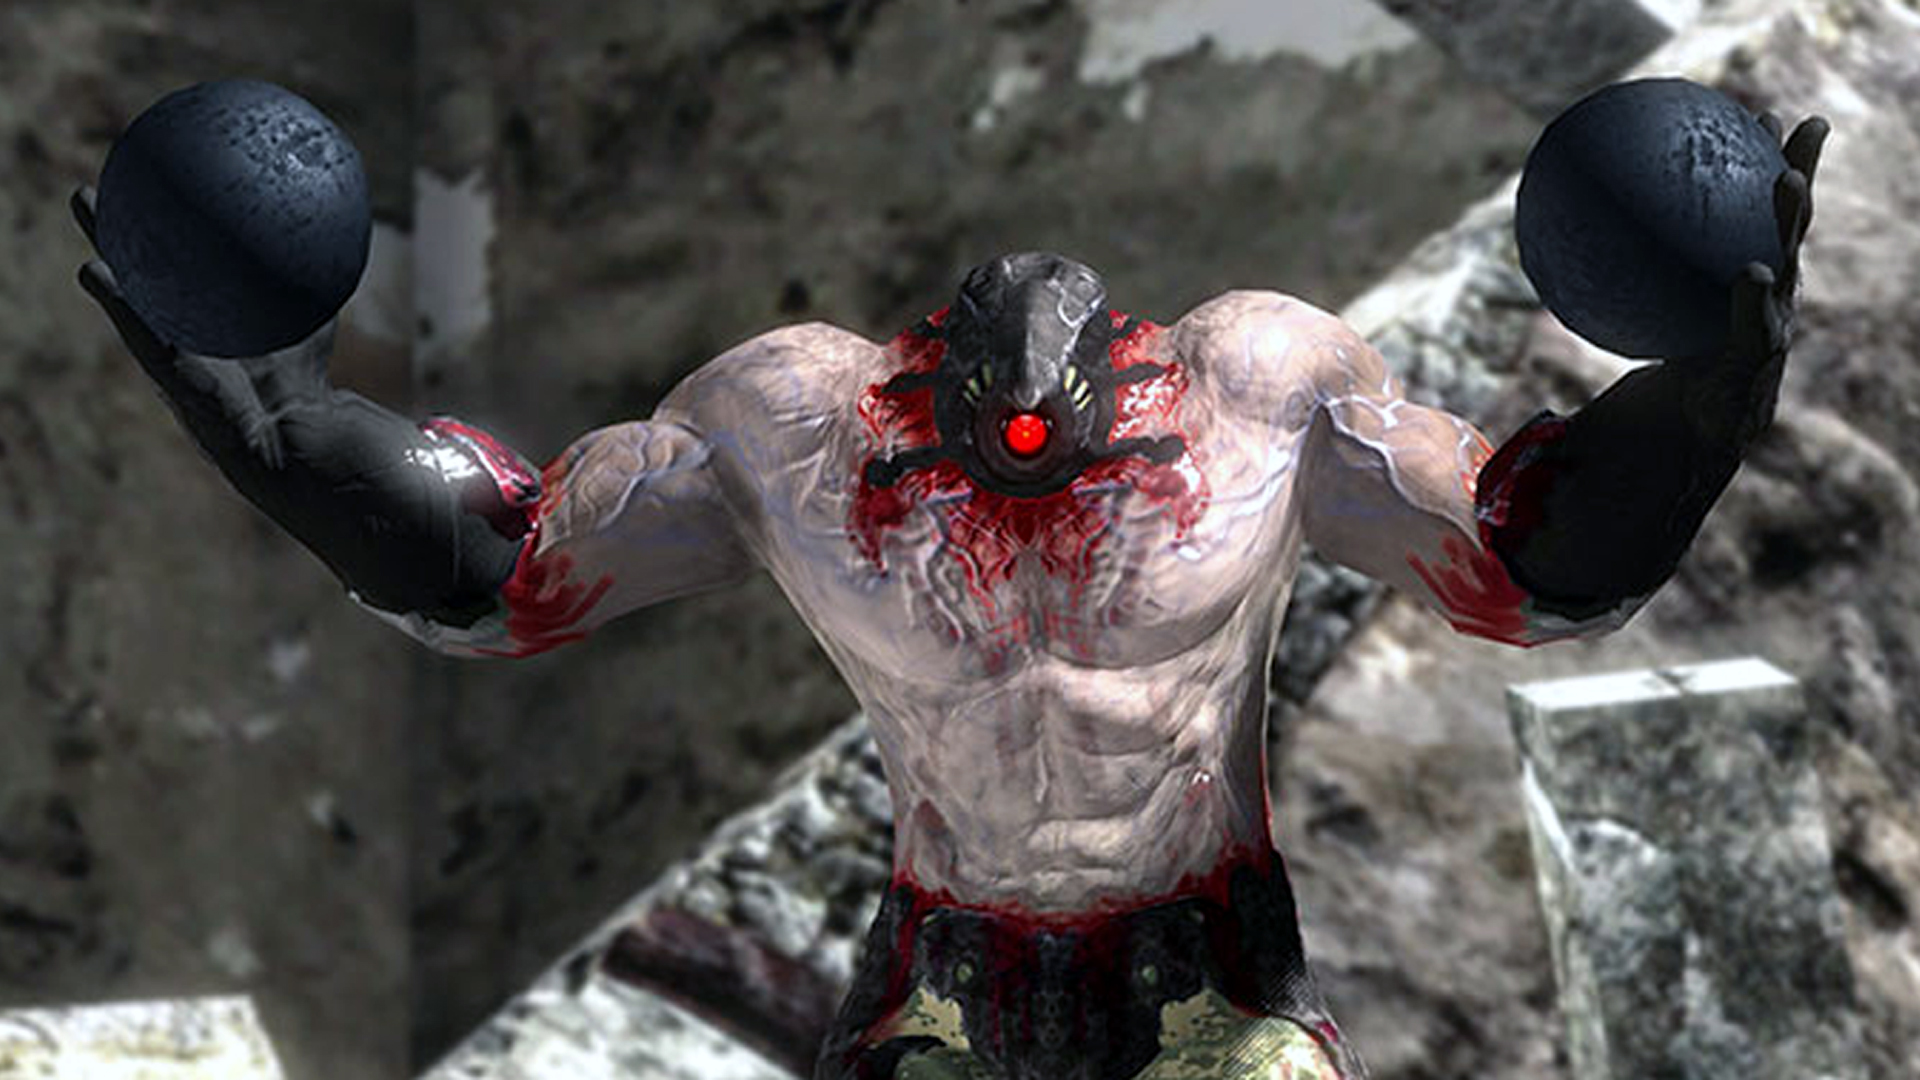 Decade-old Serious Sam spin-off starring the bomb guy finally hits PC